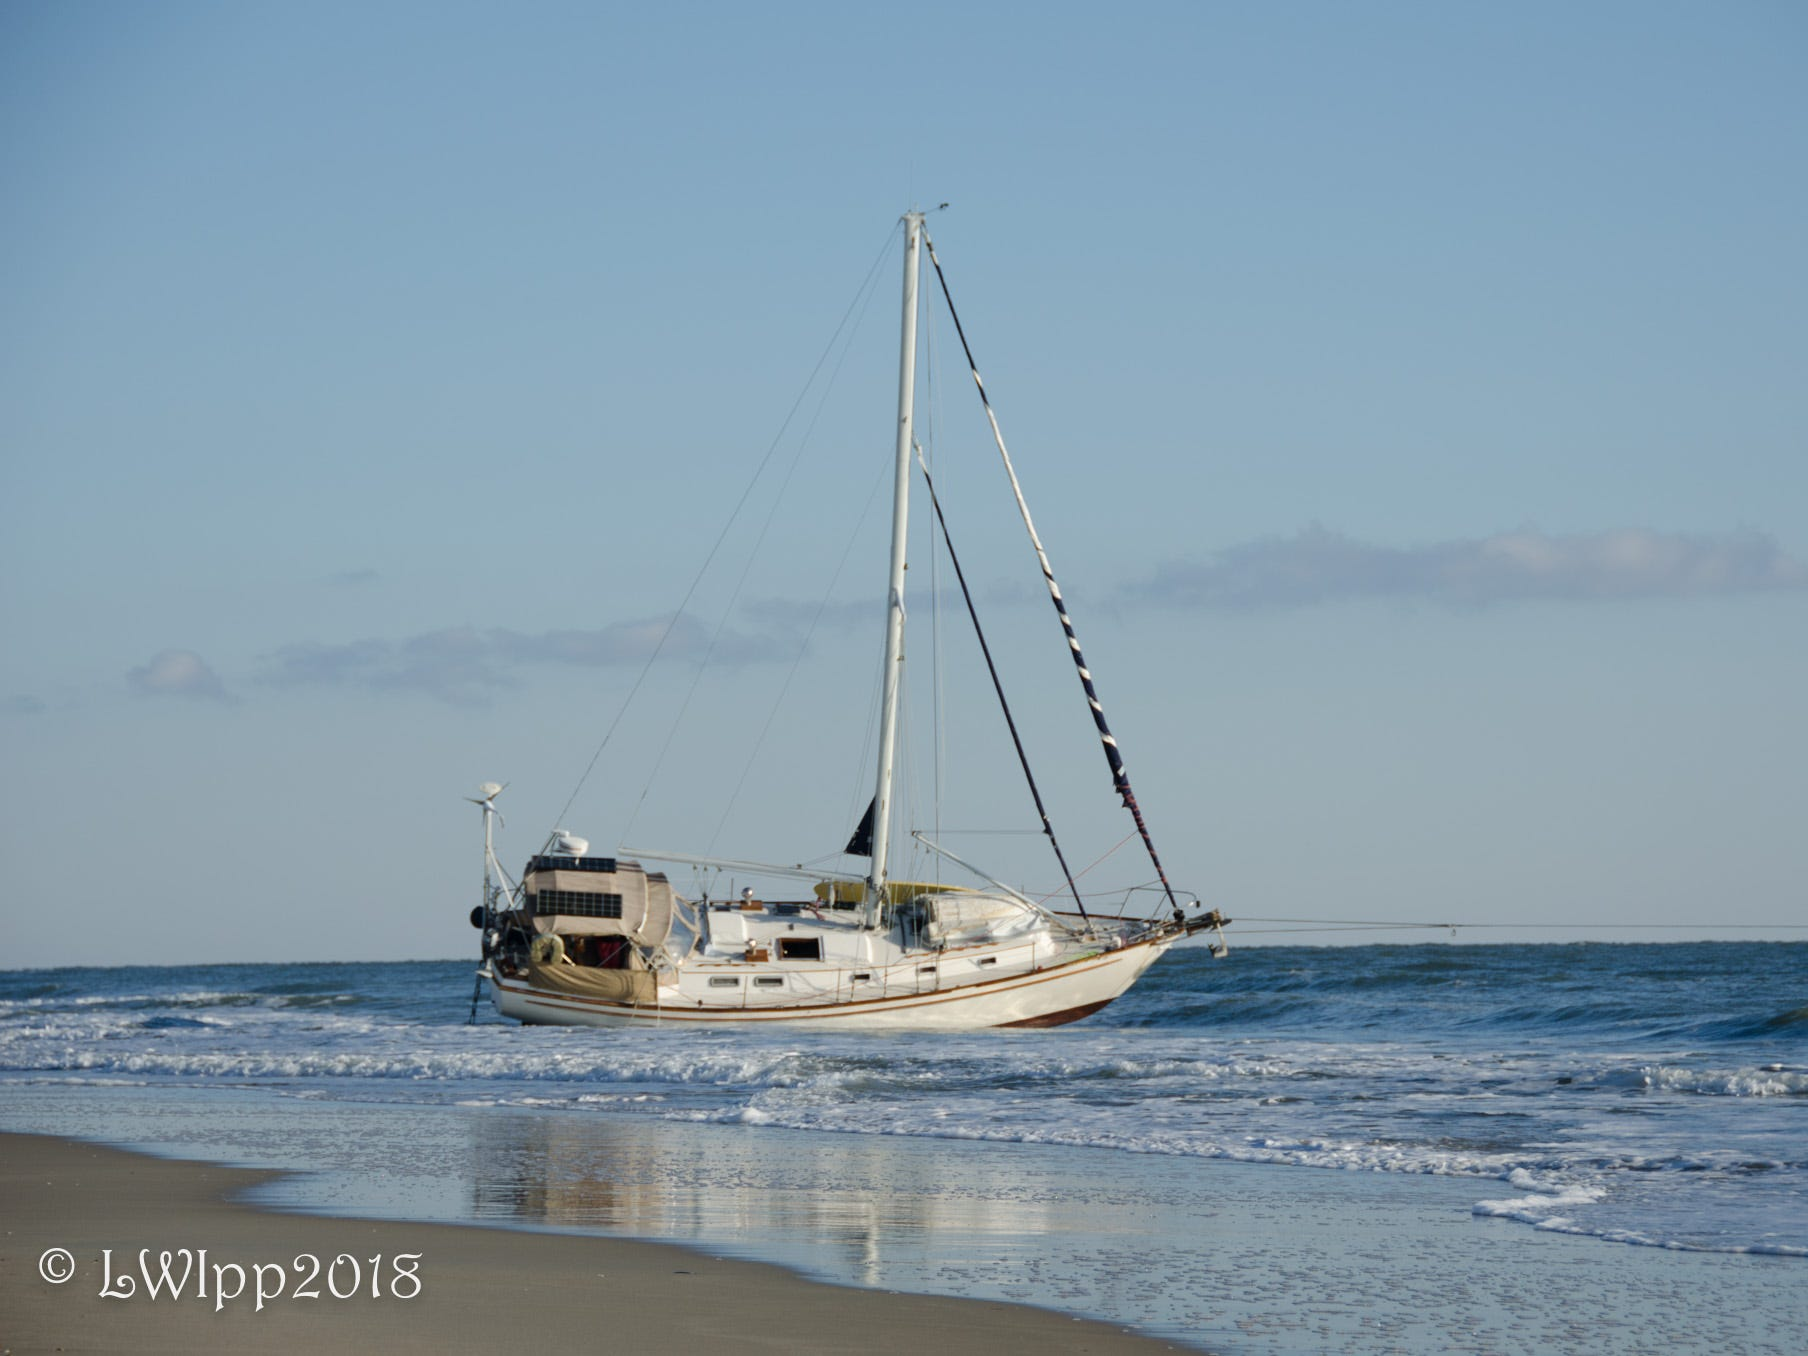 Ocean City: Three rescued by Coast Guard after sailboat runs aground